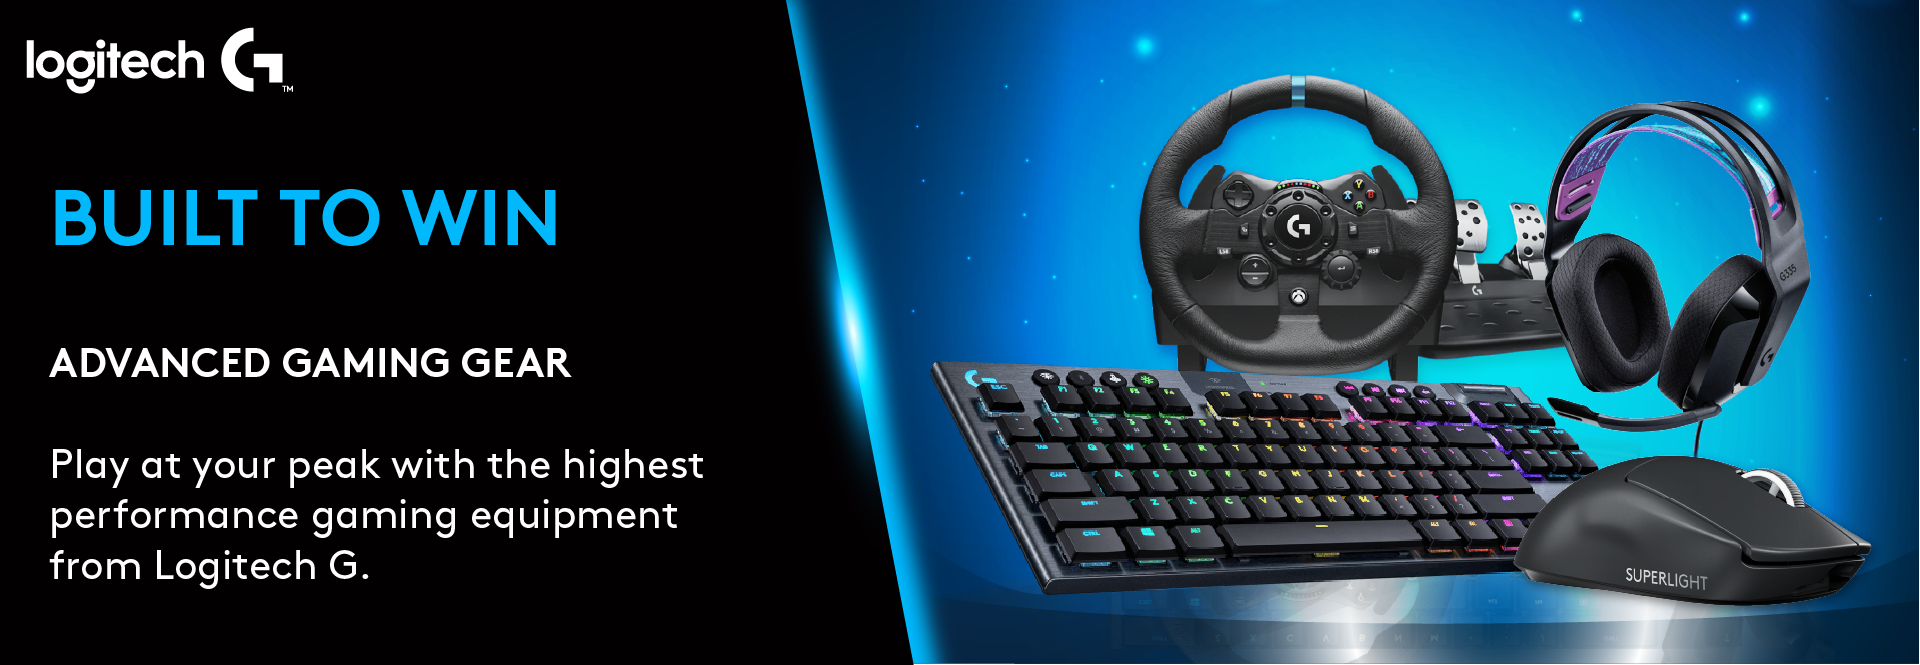 Built to Win - Create your game-winning setup with masterly crafted mice, keyboards, steering wheels, and gaming headsets to take you ahead in the game - Logitech G   Kaira Global